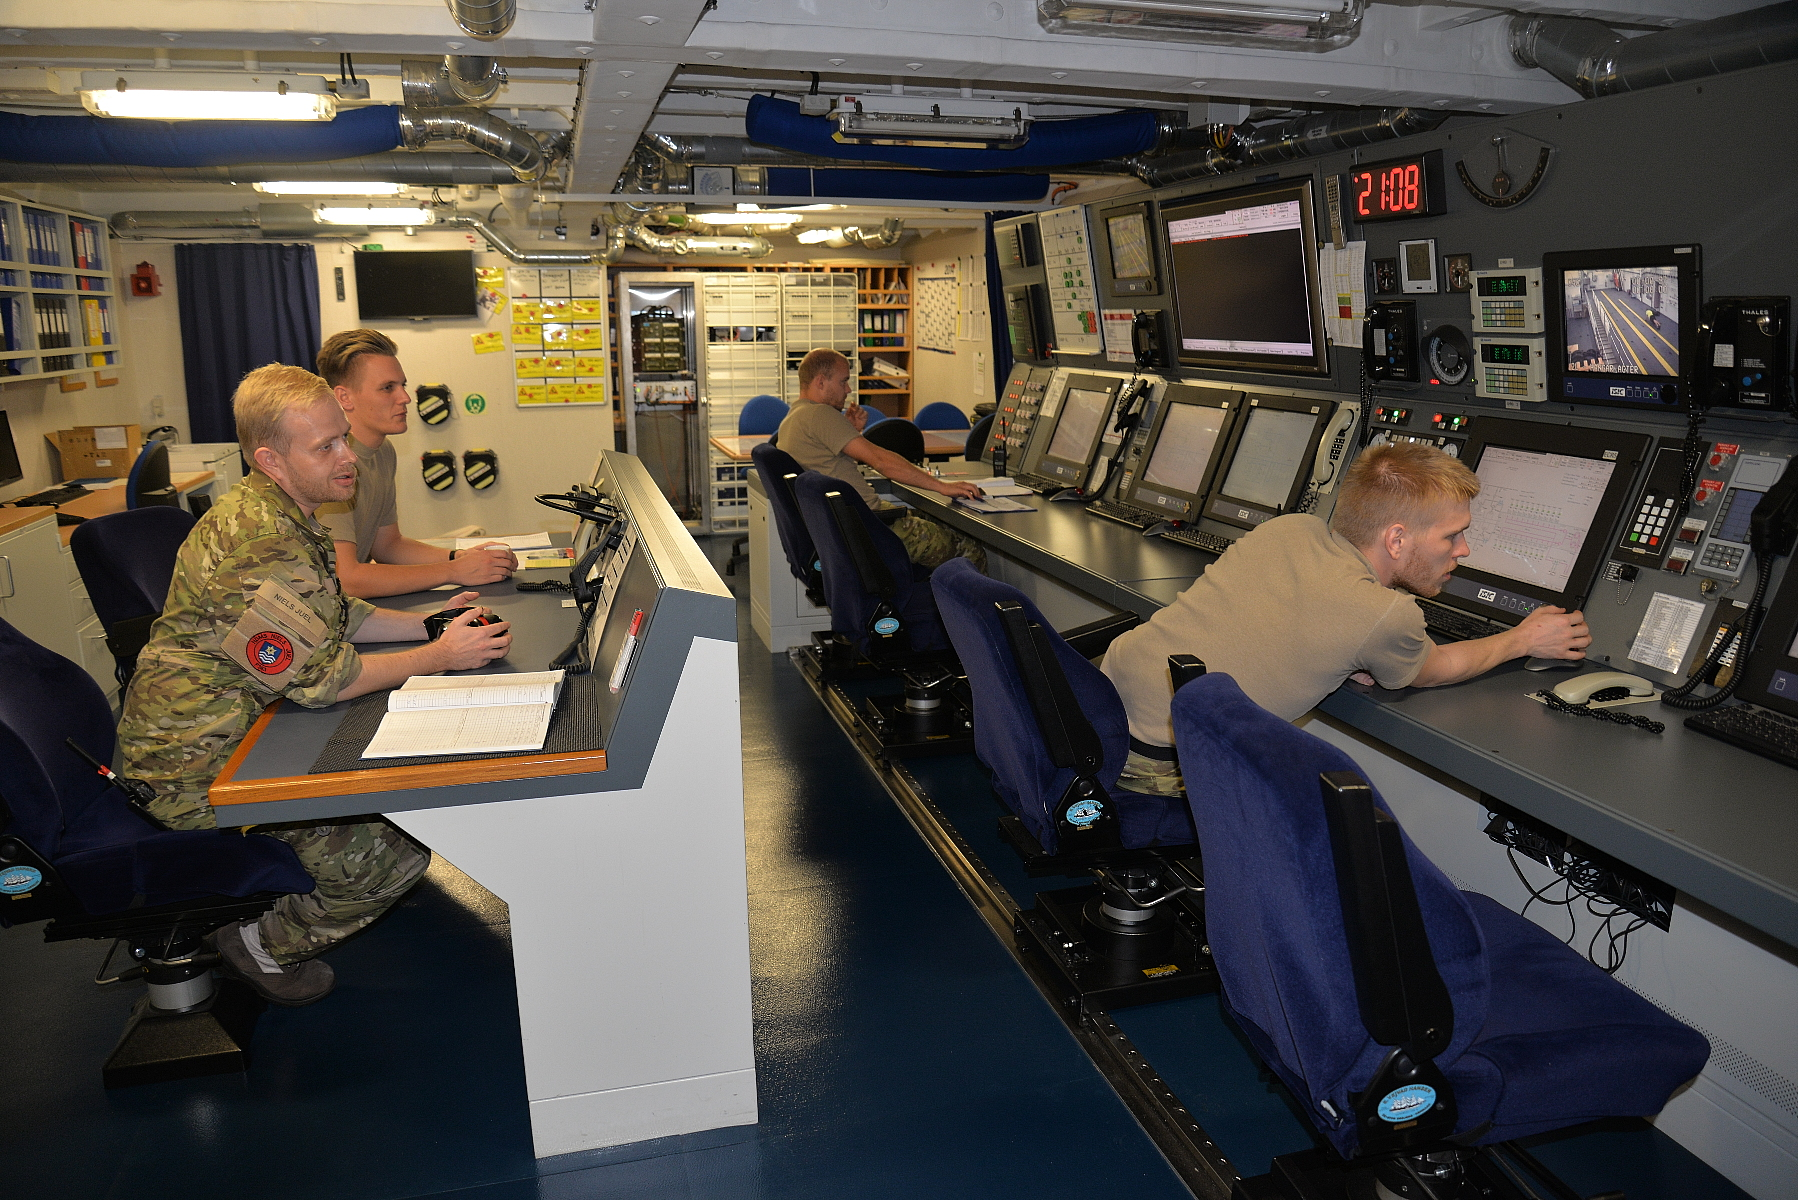 Electro Officer Christian Jens, in the foreground at left, oversees operations in the ship's Engineering Control center. With a crew of only 117, the Nils Juel relies on a high degree of automation. Fifty cameras monitor key spaces around the ship -- at right, one of them shows a view of the helicopter hangar.